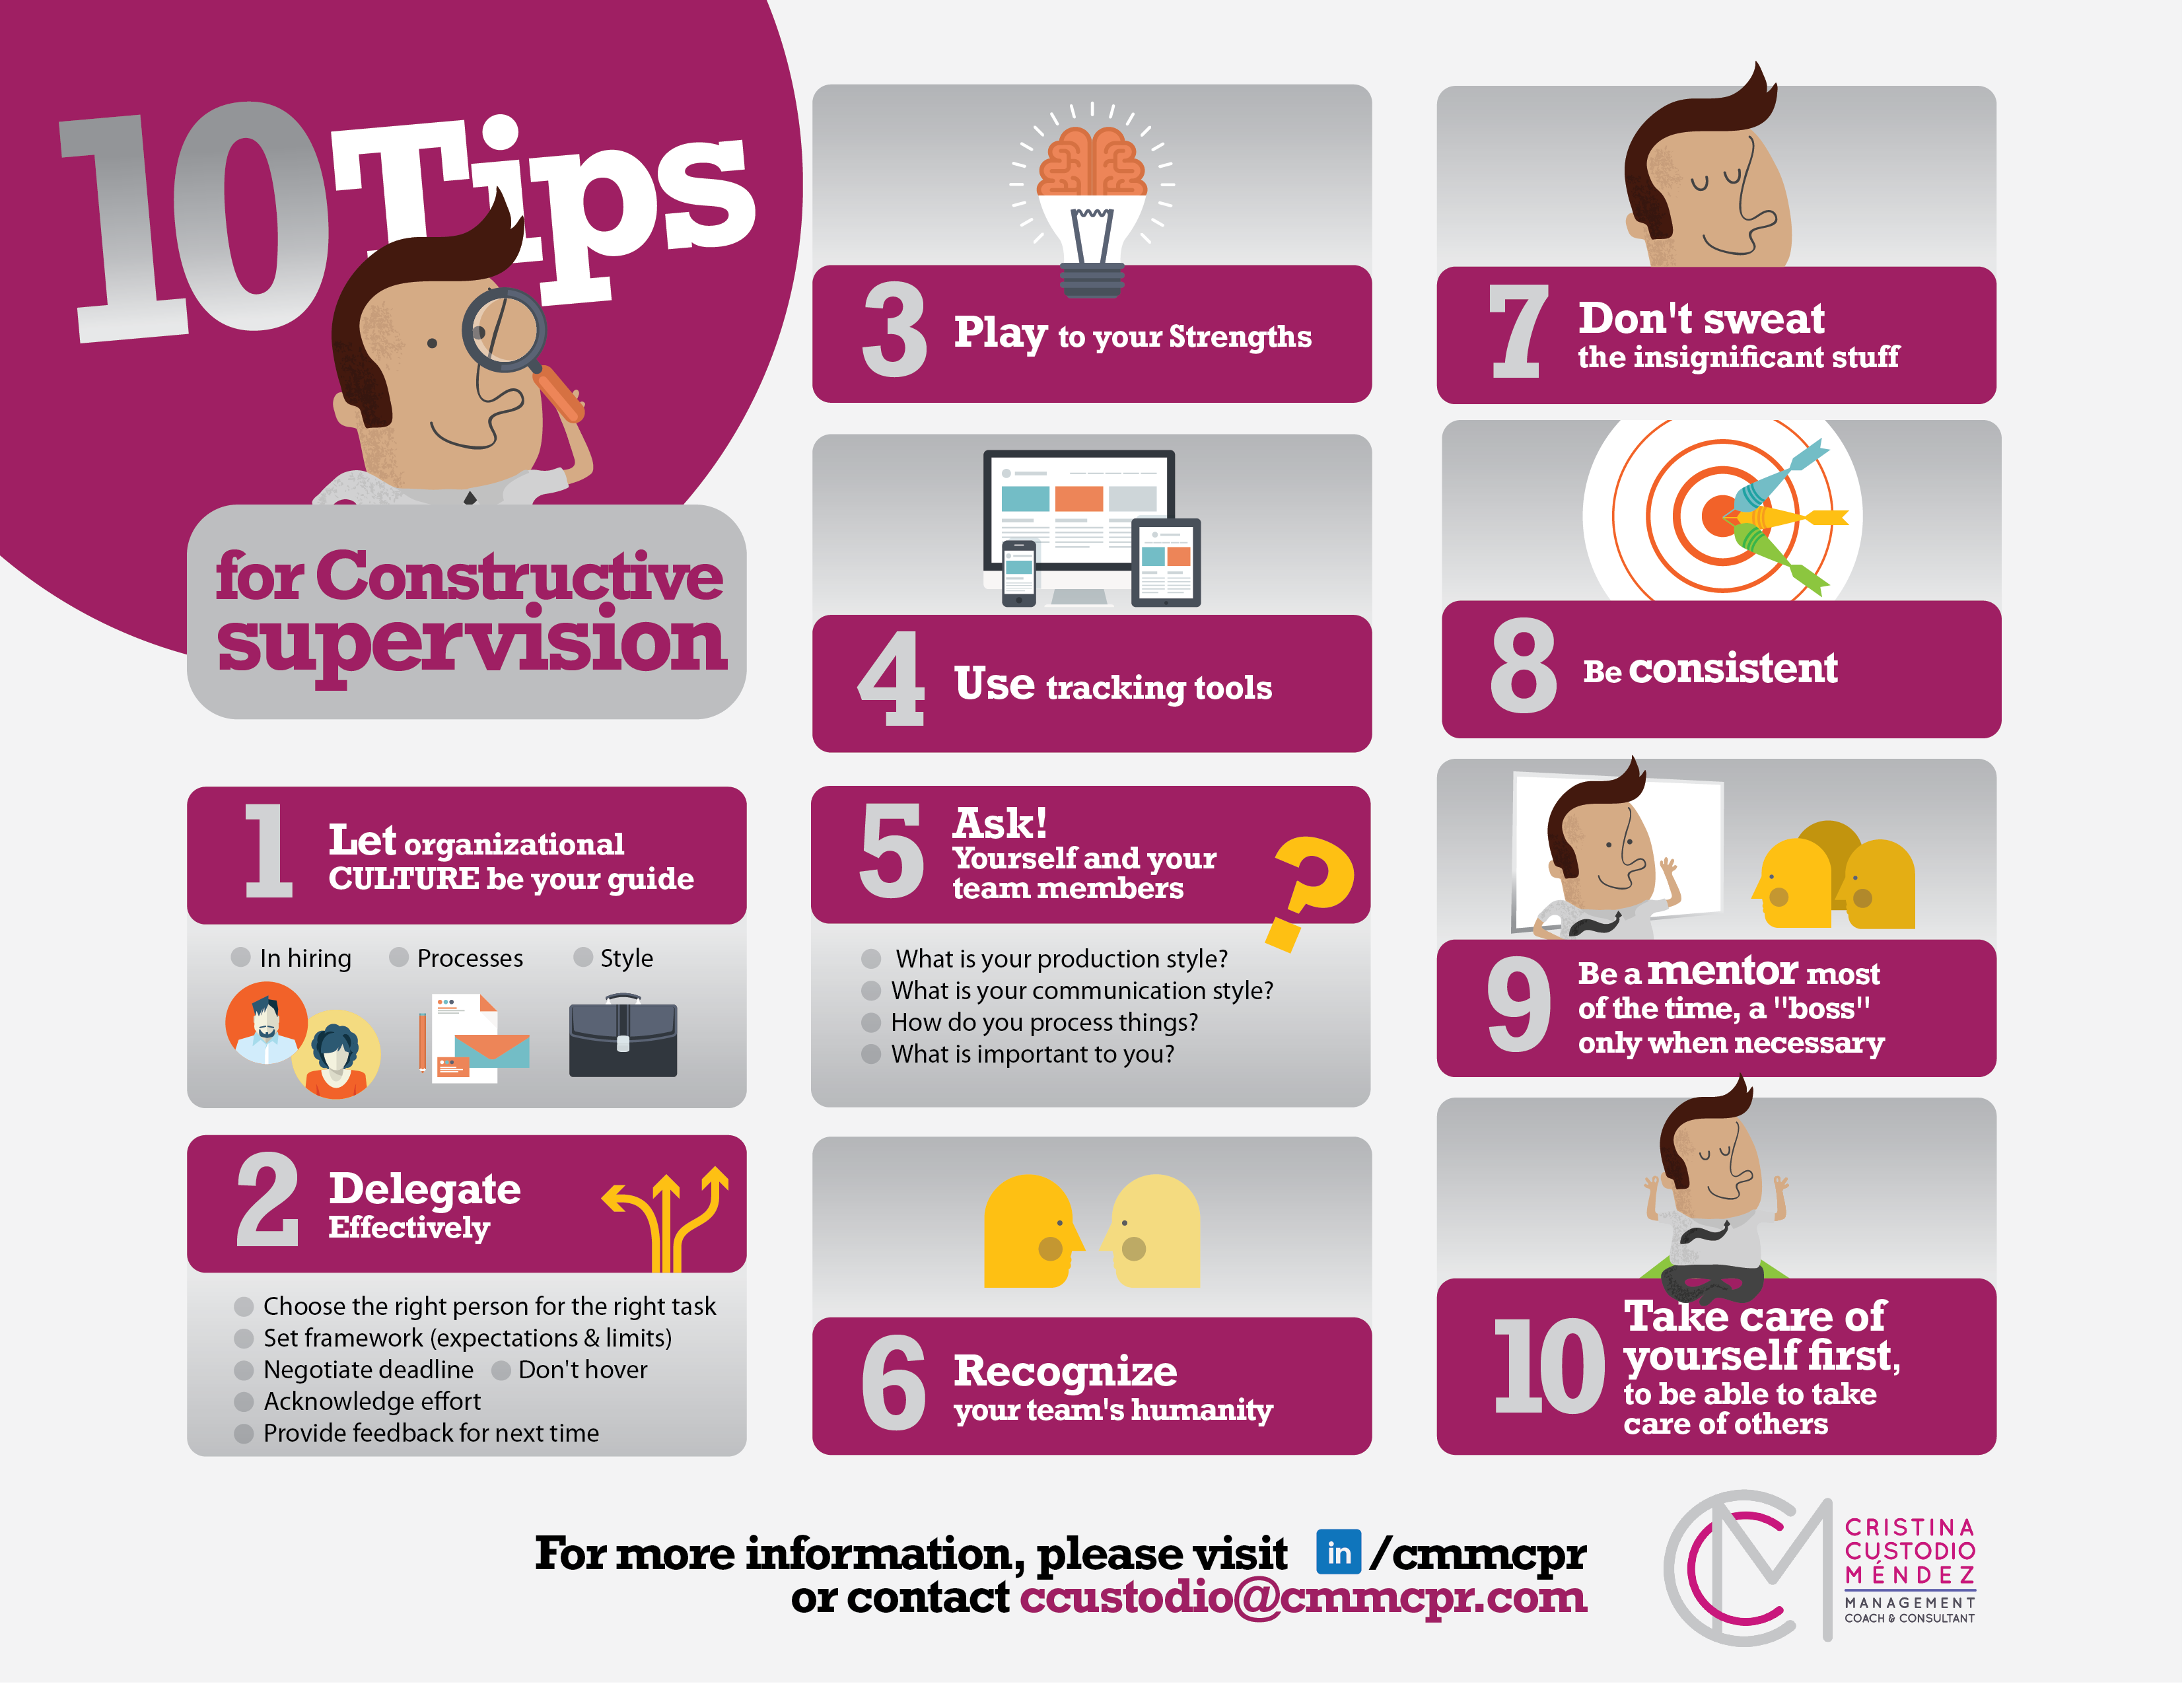 10 Tips for Constructive Supervision and Management